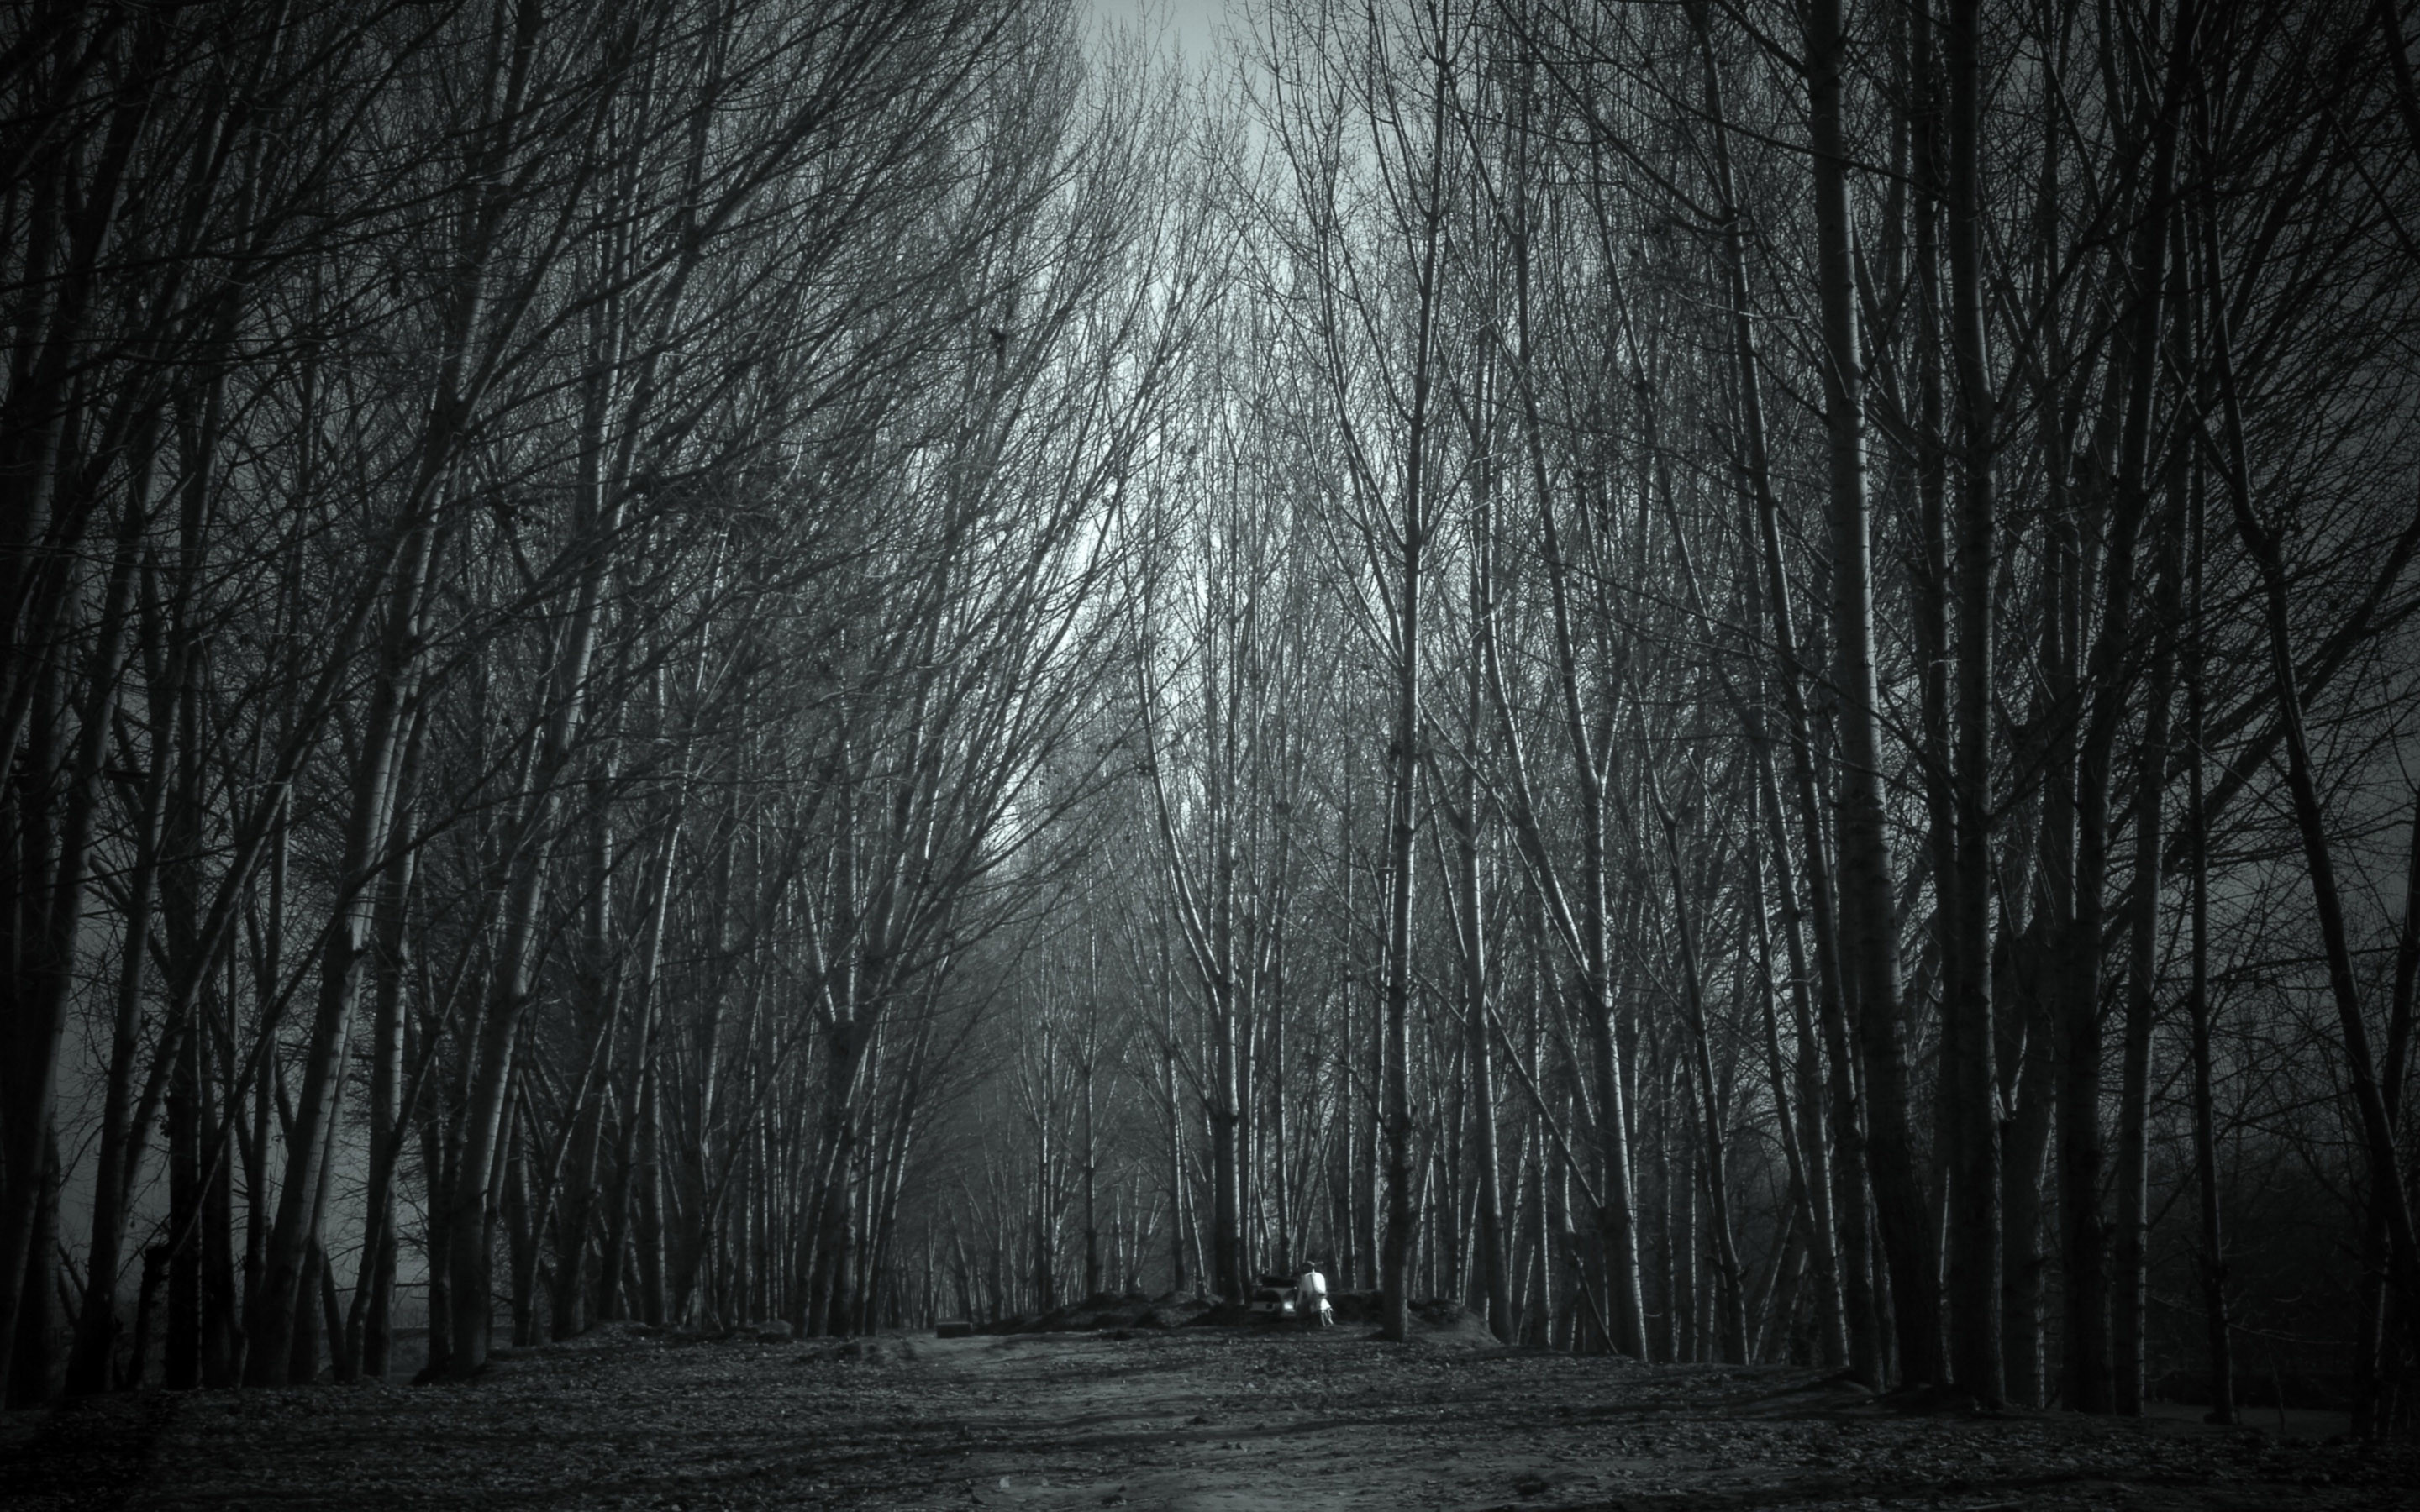 Haunted Forest Wallpaper 59 images 2880x1800